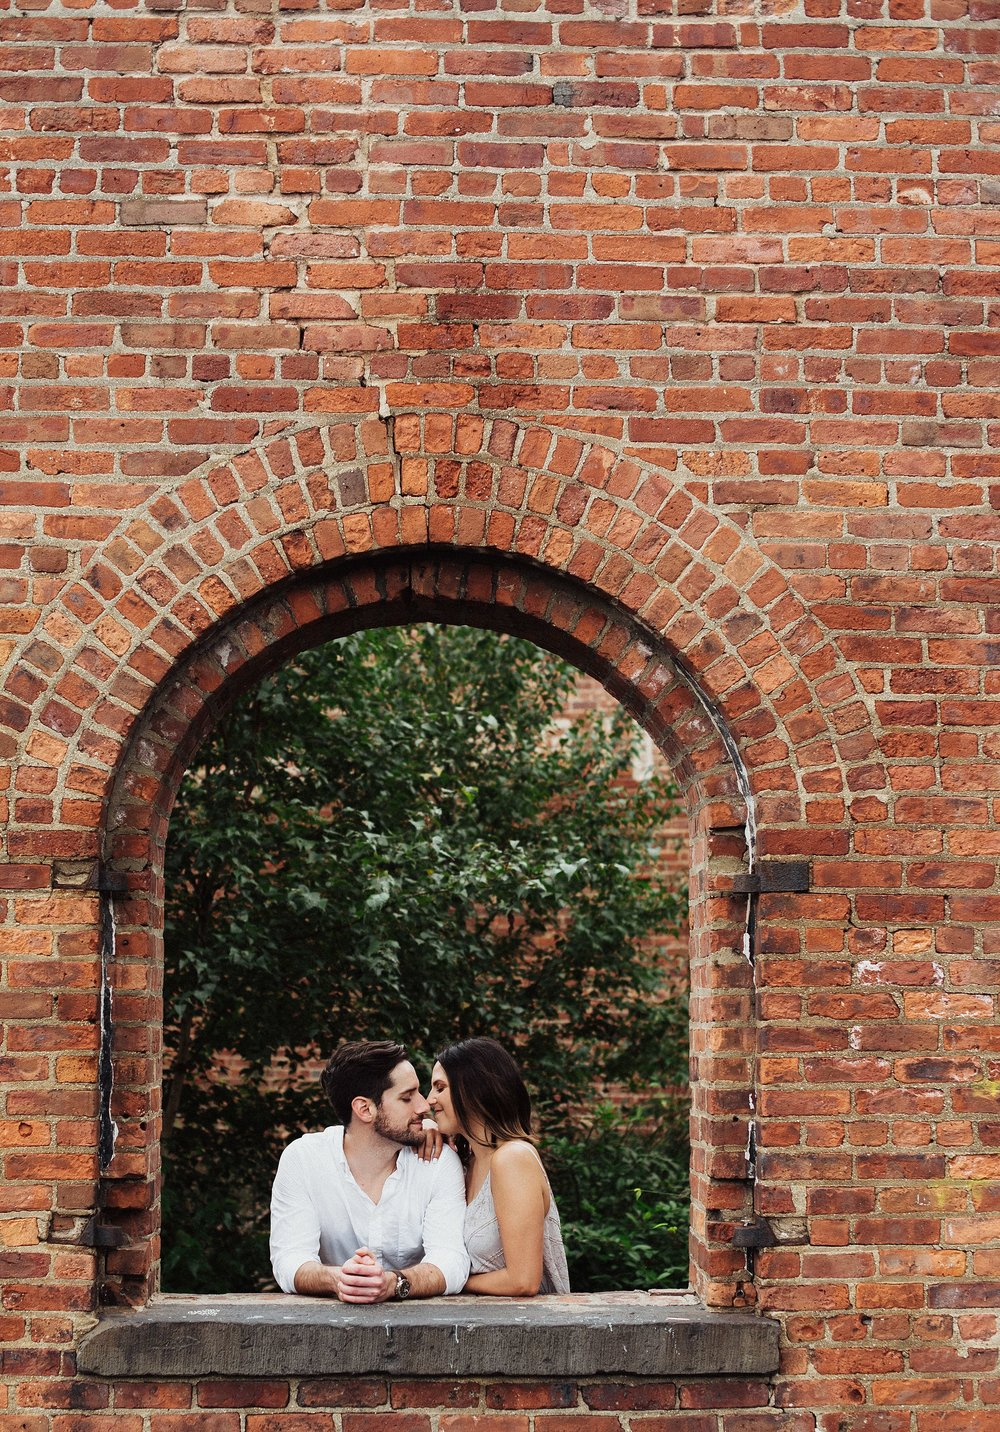 dumbo-brooklyn-engagement-session_3956.jpg